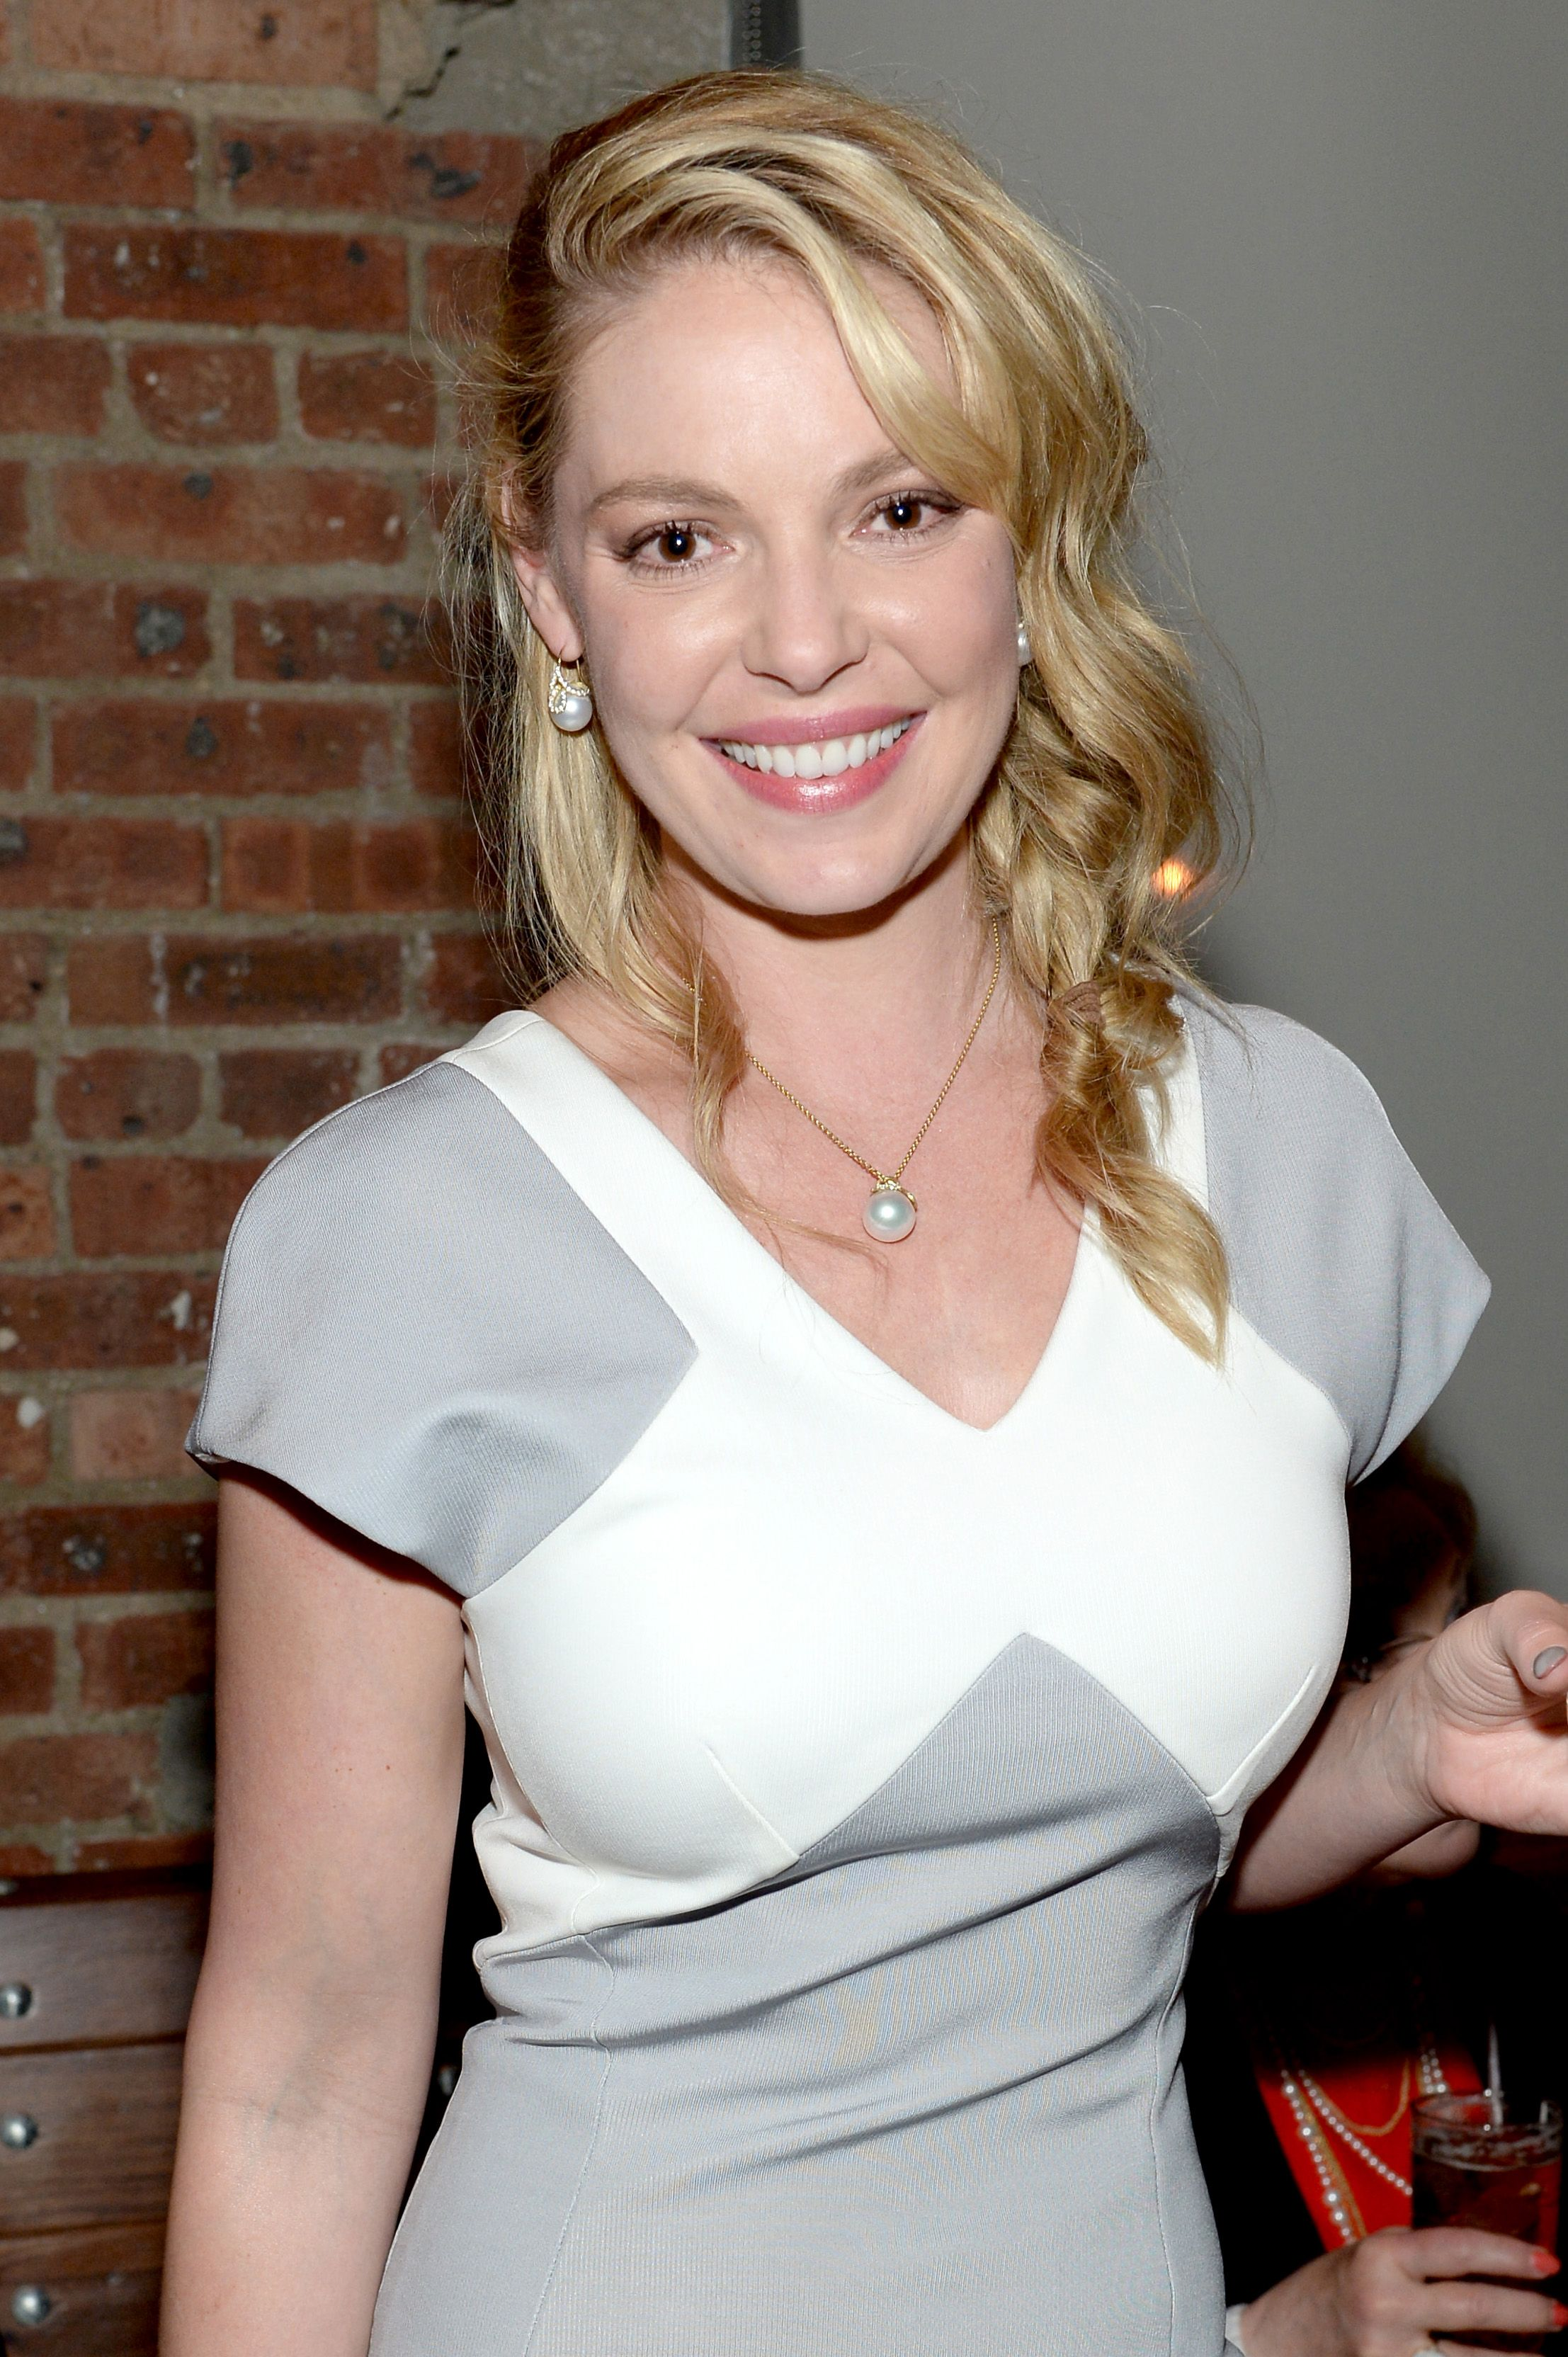 Katherine Heigl Is Returning To TV With New Show 'Doubt ...